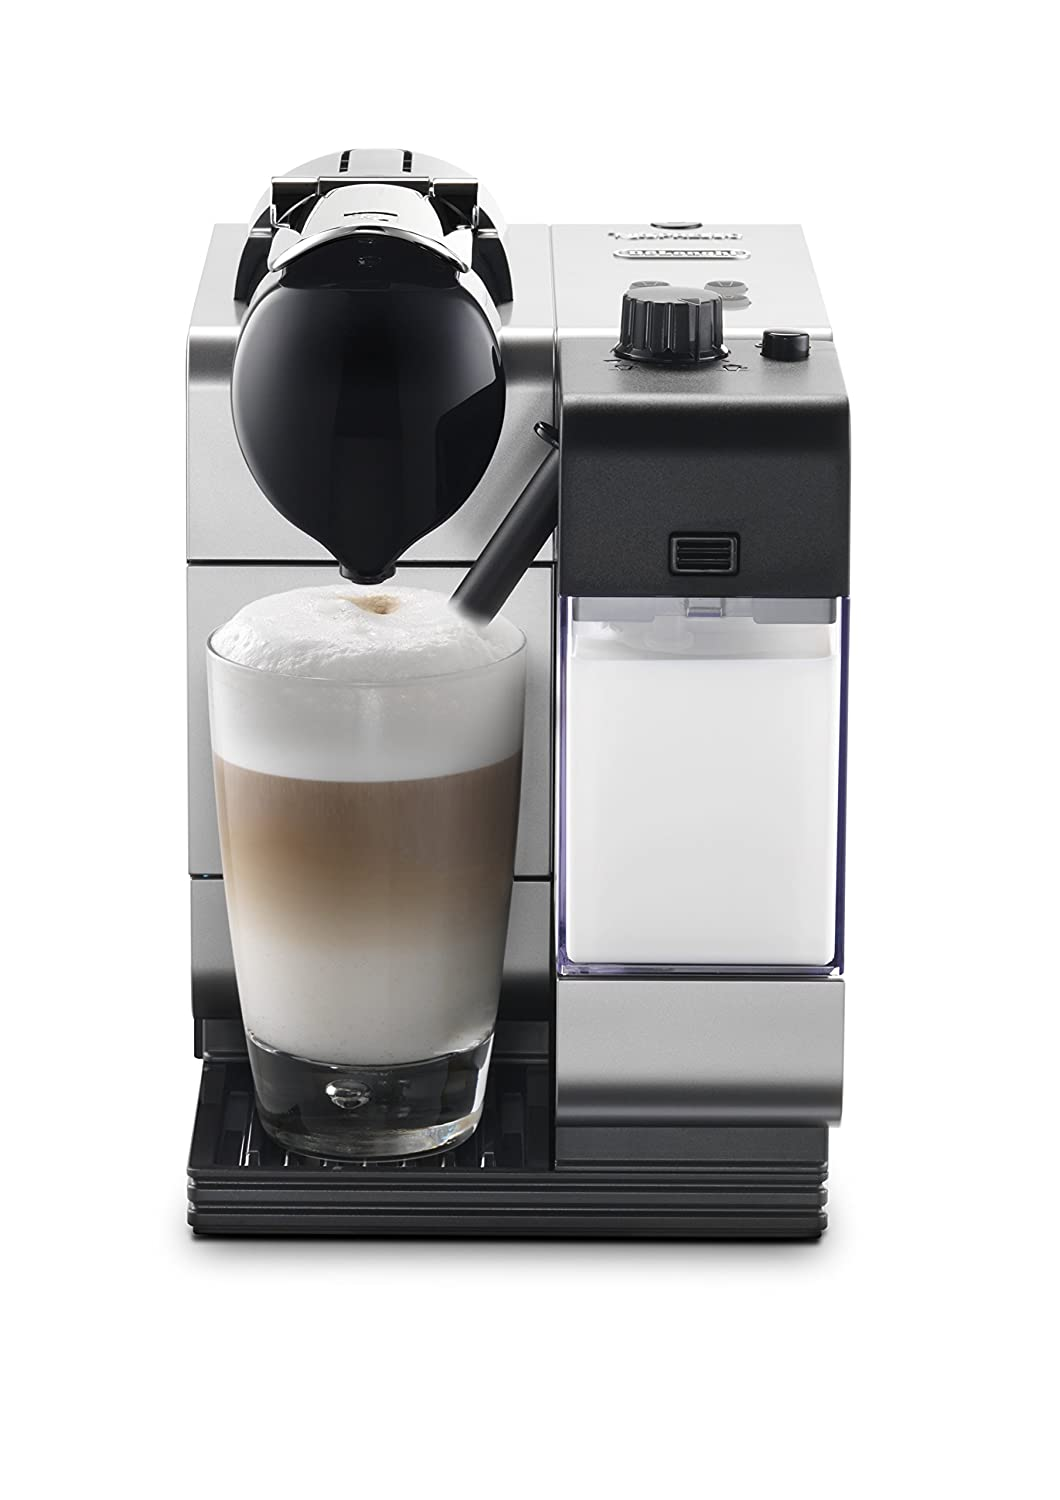 DeLonghi Nespresso Lattissima Plus Original Espresso Machine